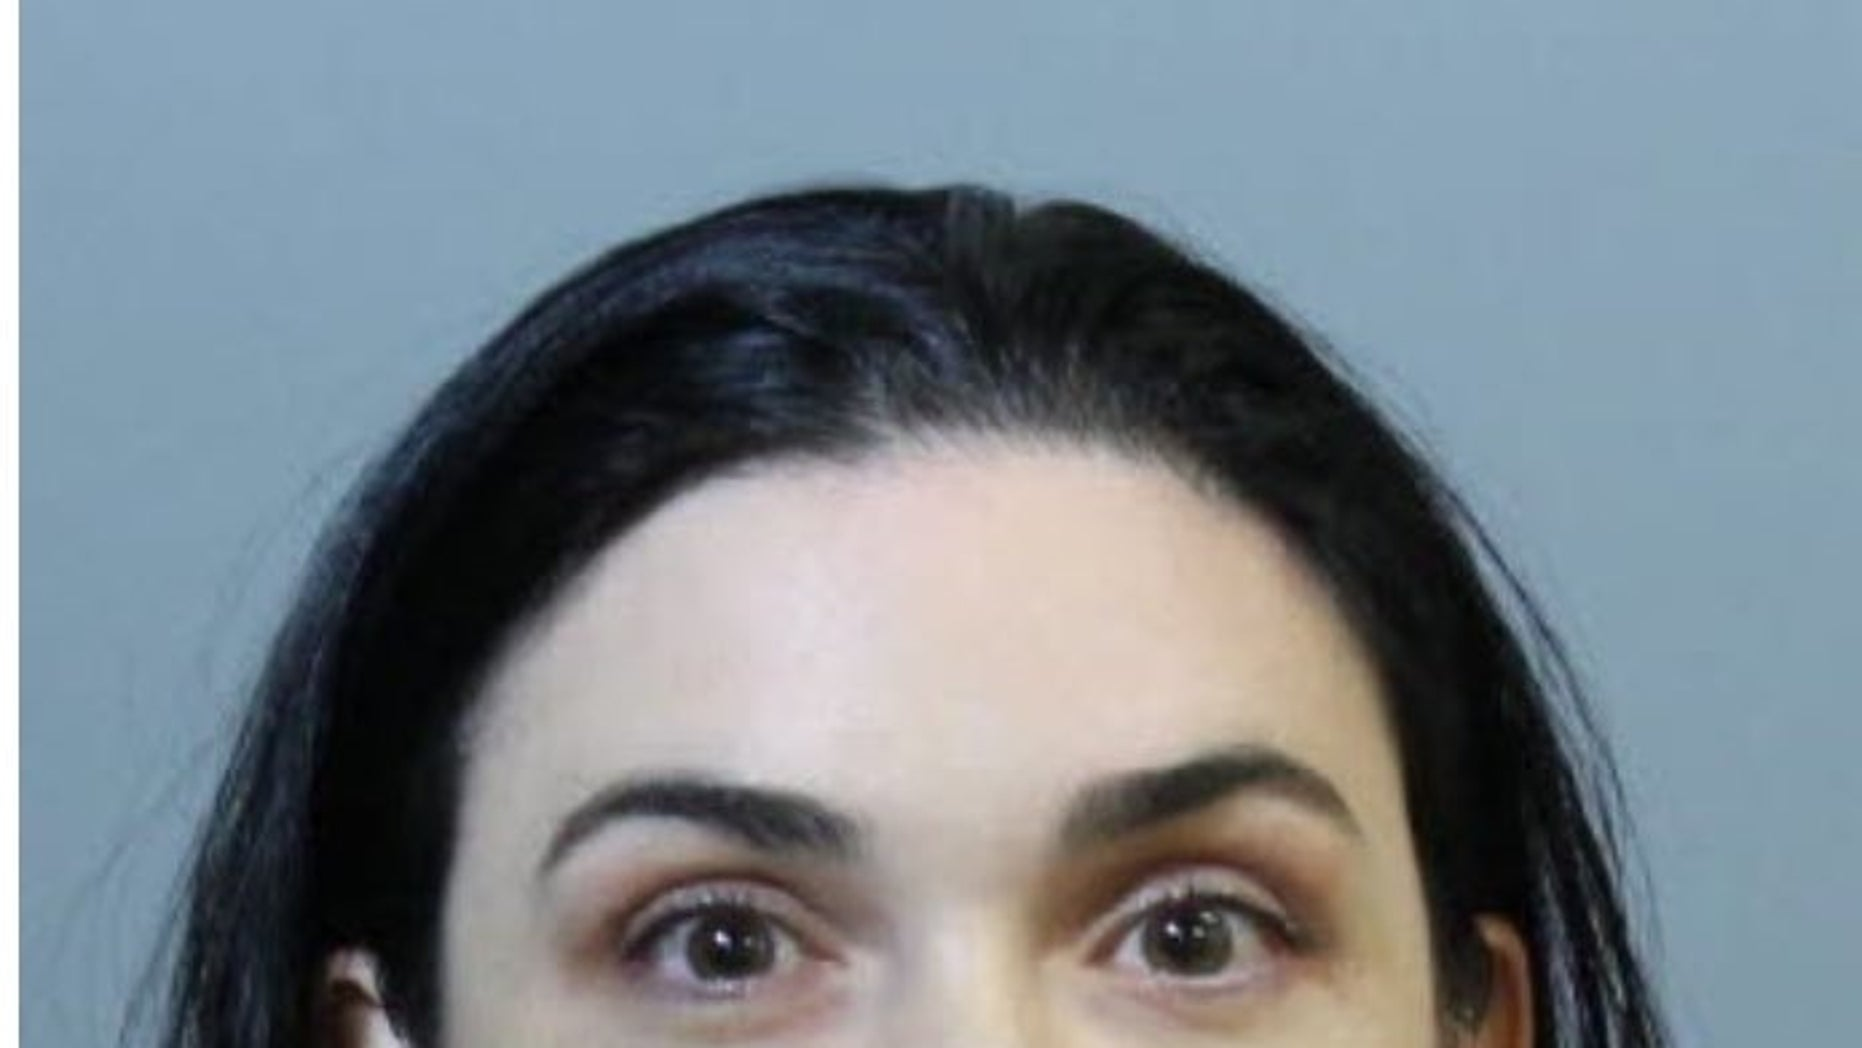 Jaclyn Truman, 30, was arrested Friday after being accused of having a sexual relationship with a female student.